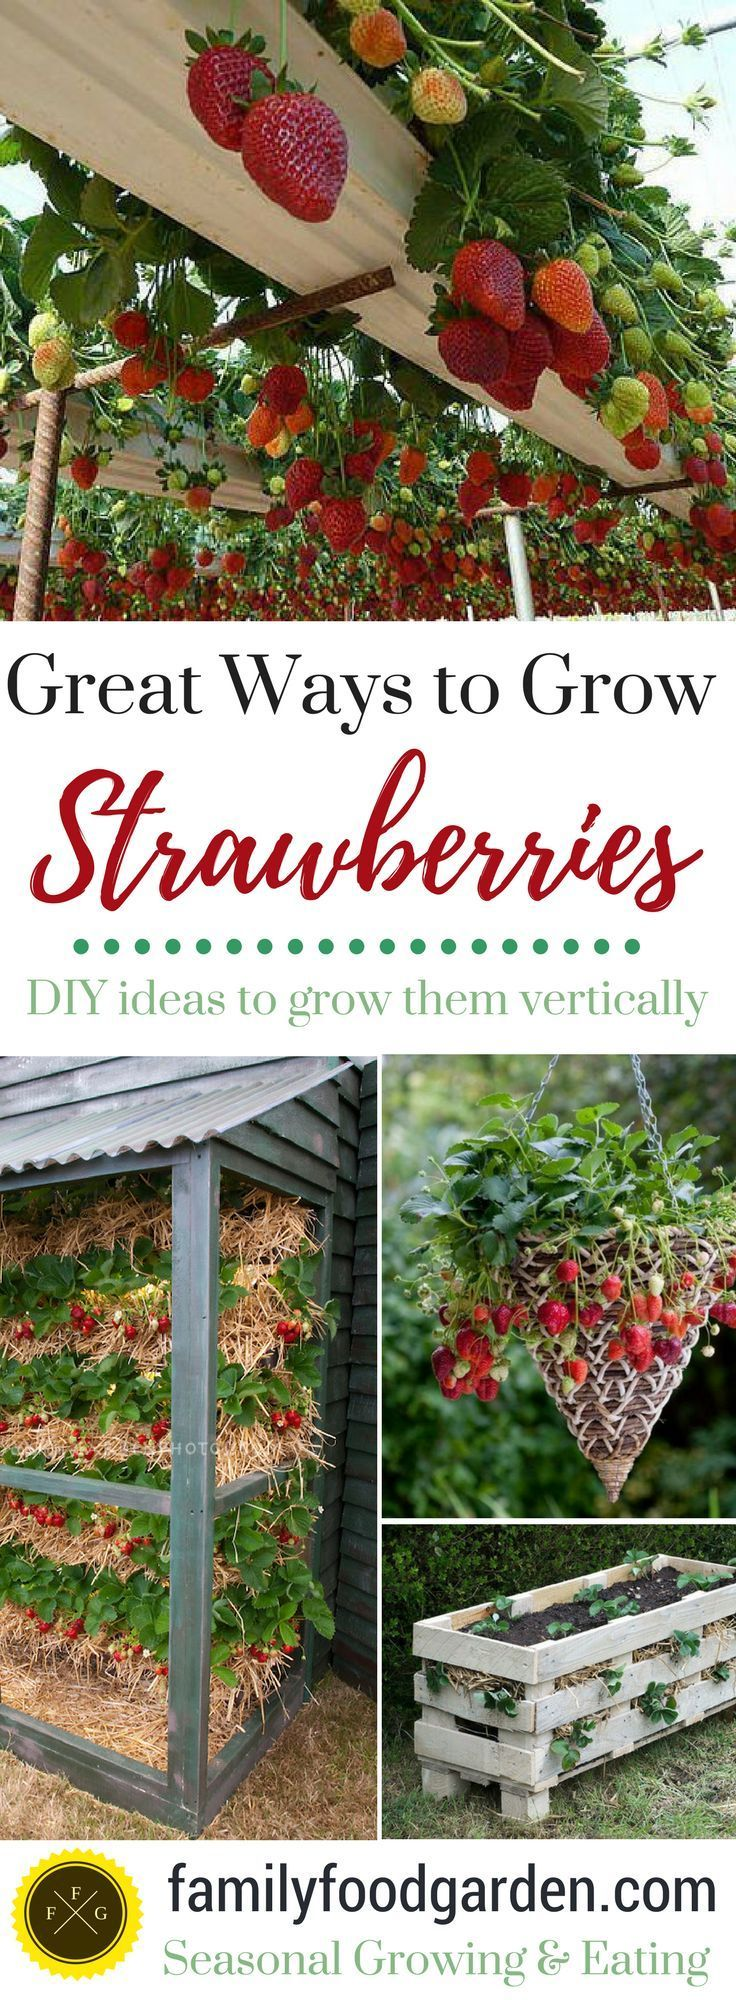 Best Way To Grow Strawberries In Containers 2020 Family Food Garden Growing Strawberries In Containers Strawberries In Containers Growing Strawberries Vertically